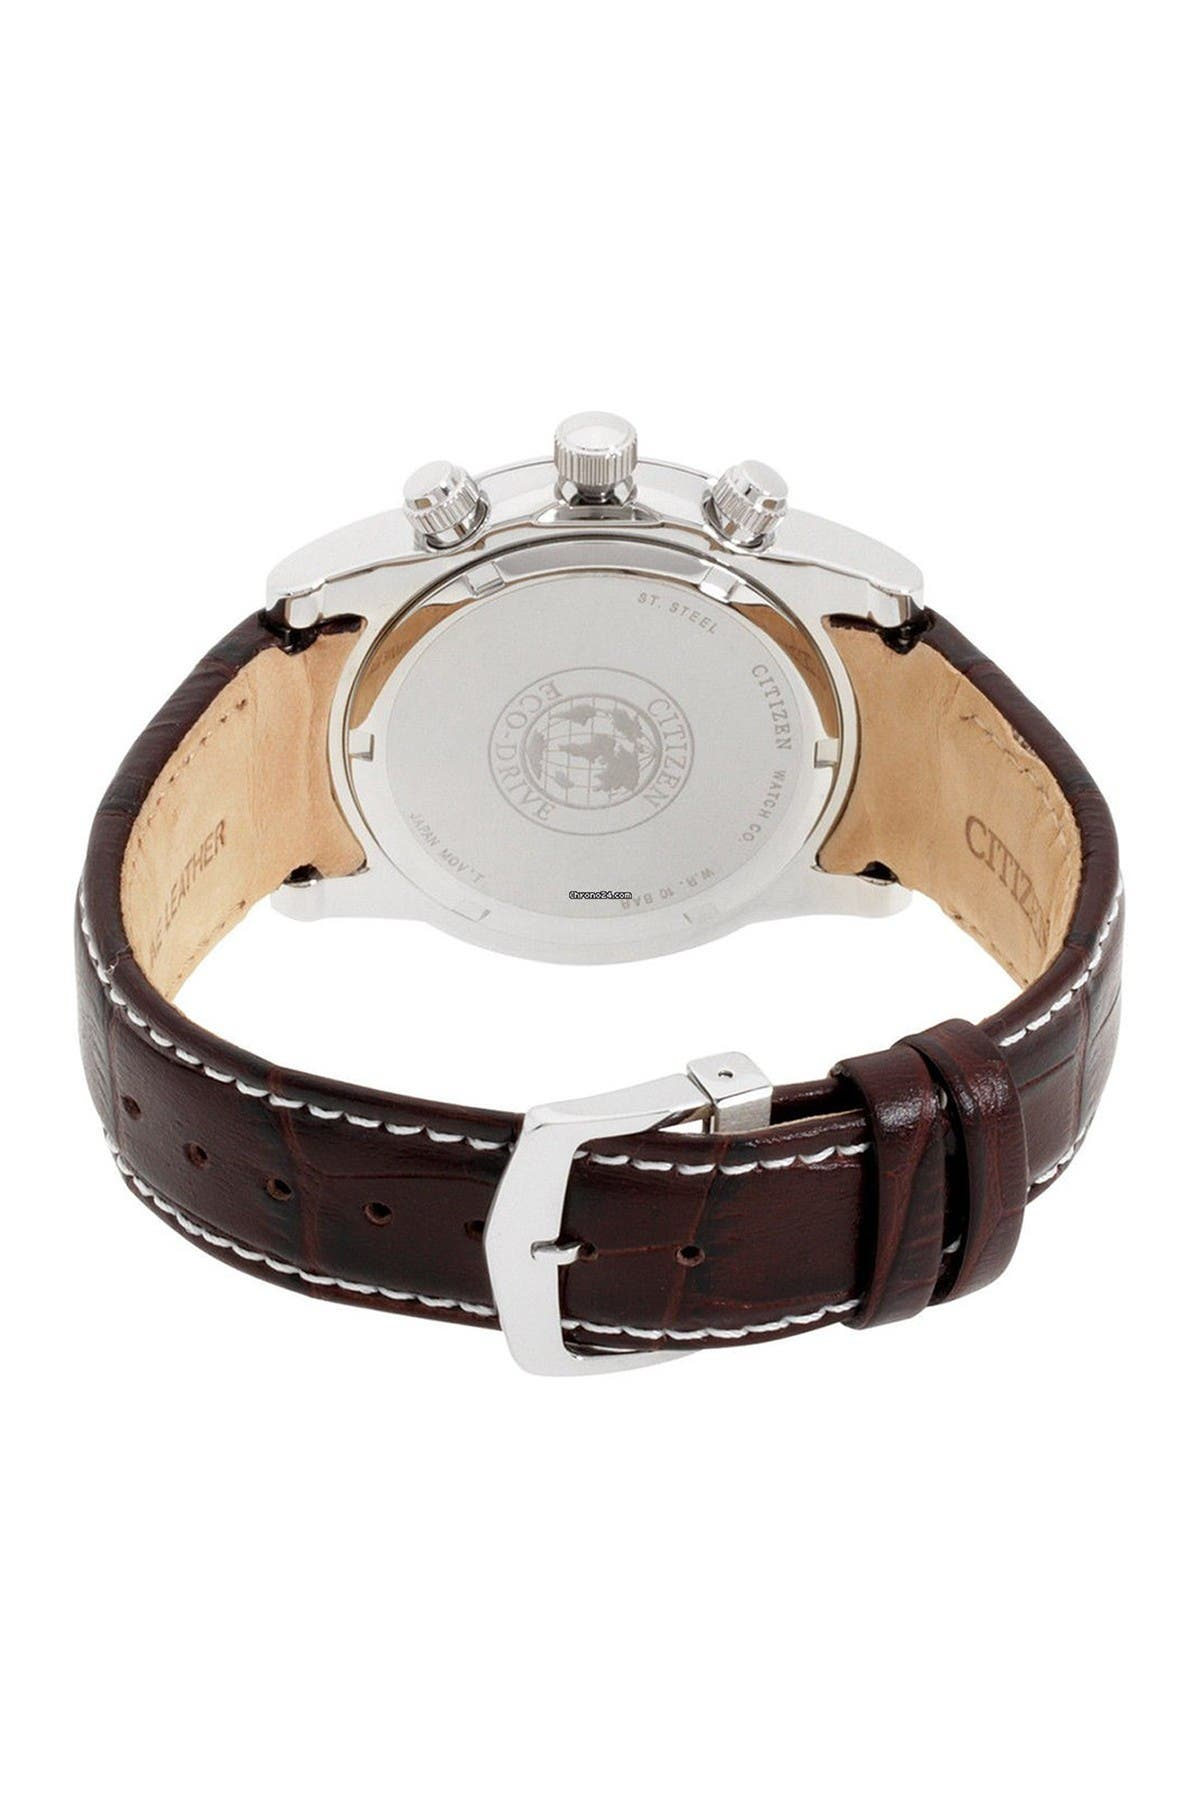 Image of Citizen Men's Eco-Drive Brown Leather Chronograph Watch, 42mm